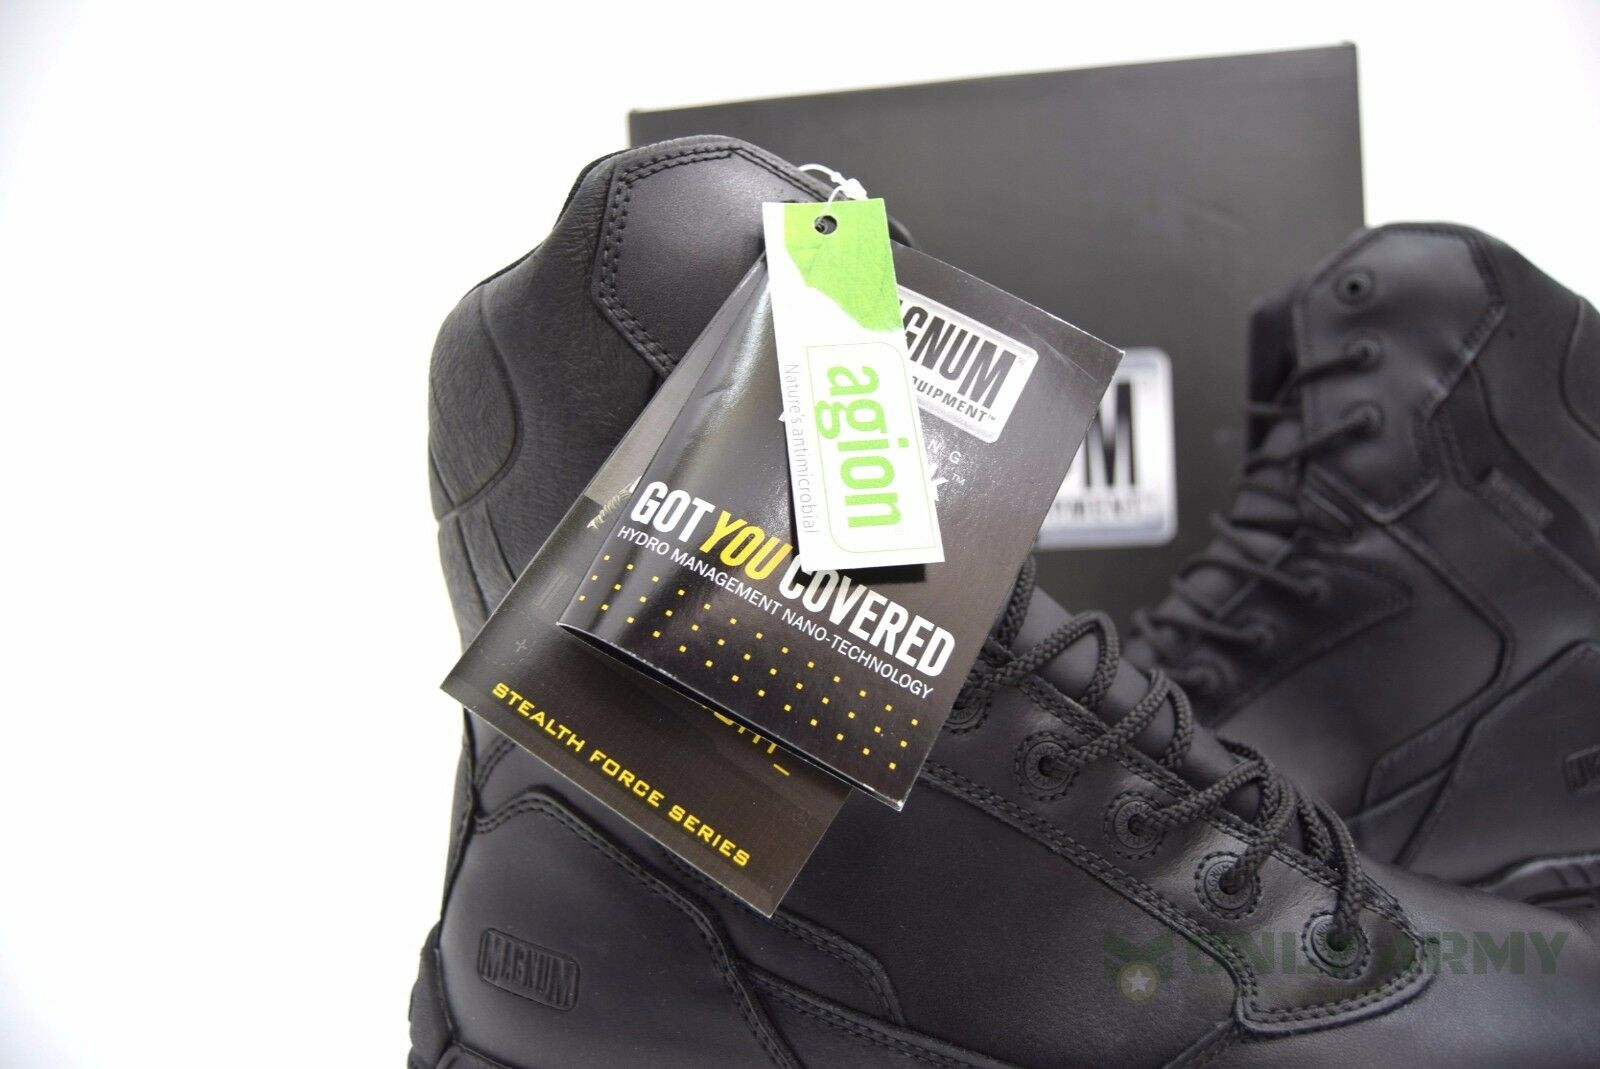 Magnum Stealth Force Leather 8.0 WPI Boots Waterproof Leather Force Boots Safety Army Police ca1cc4